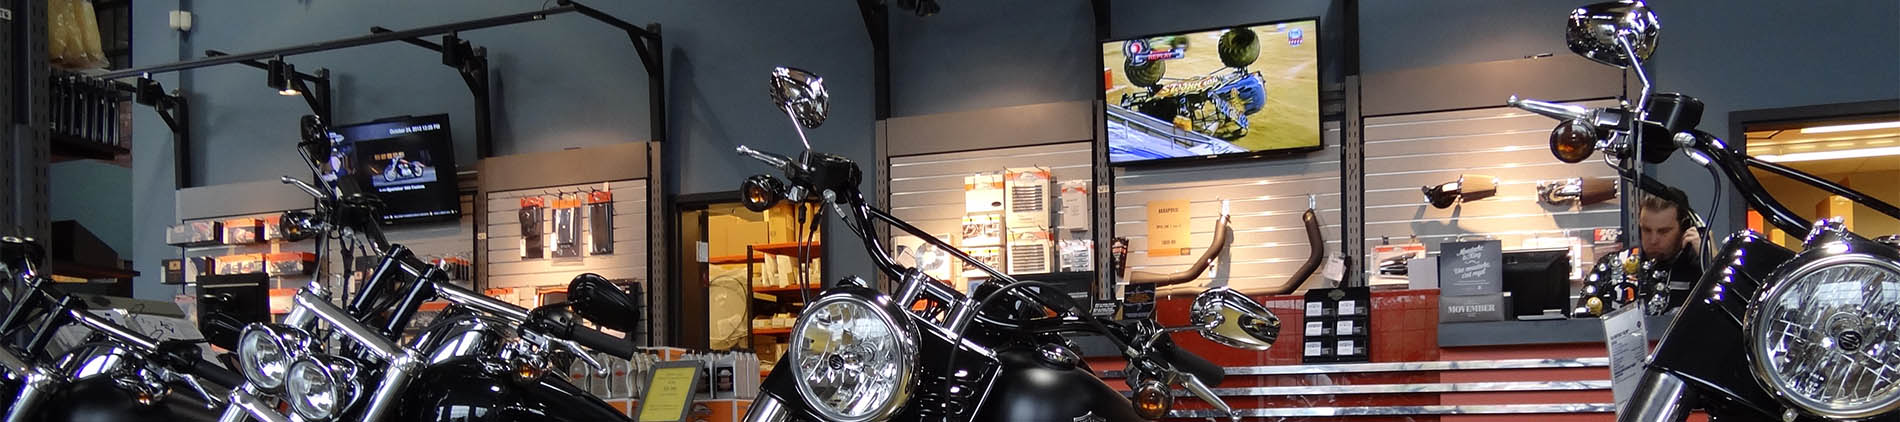 Commercial, Harley, Davidson, Display